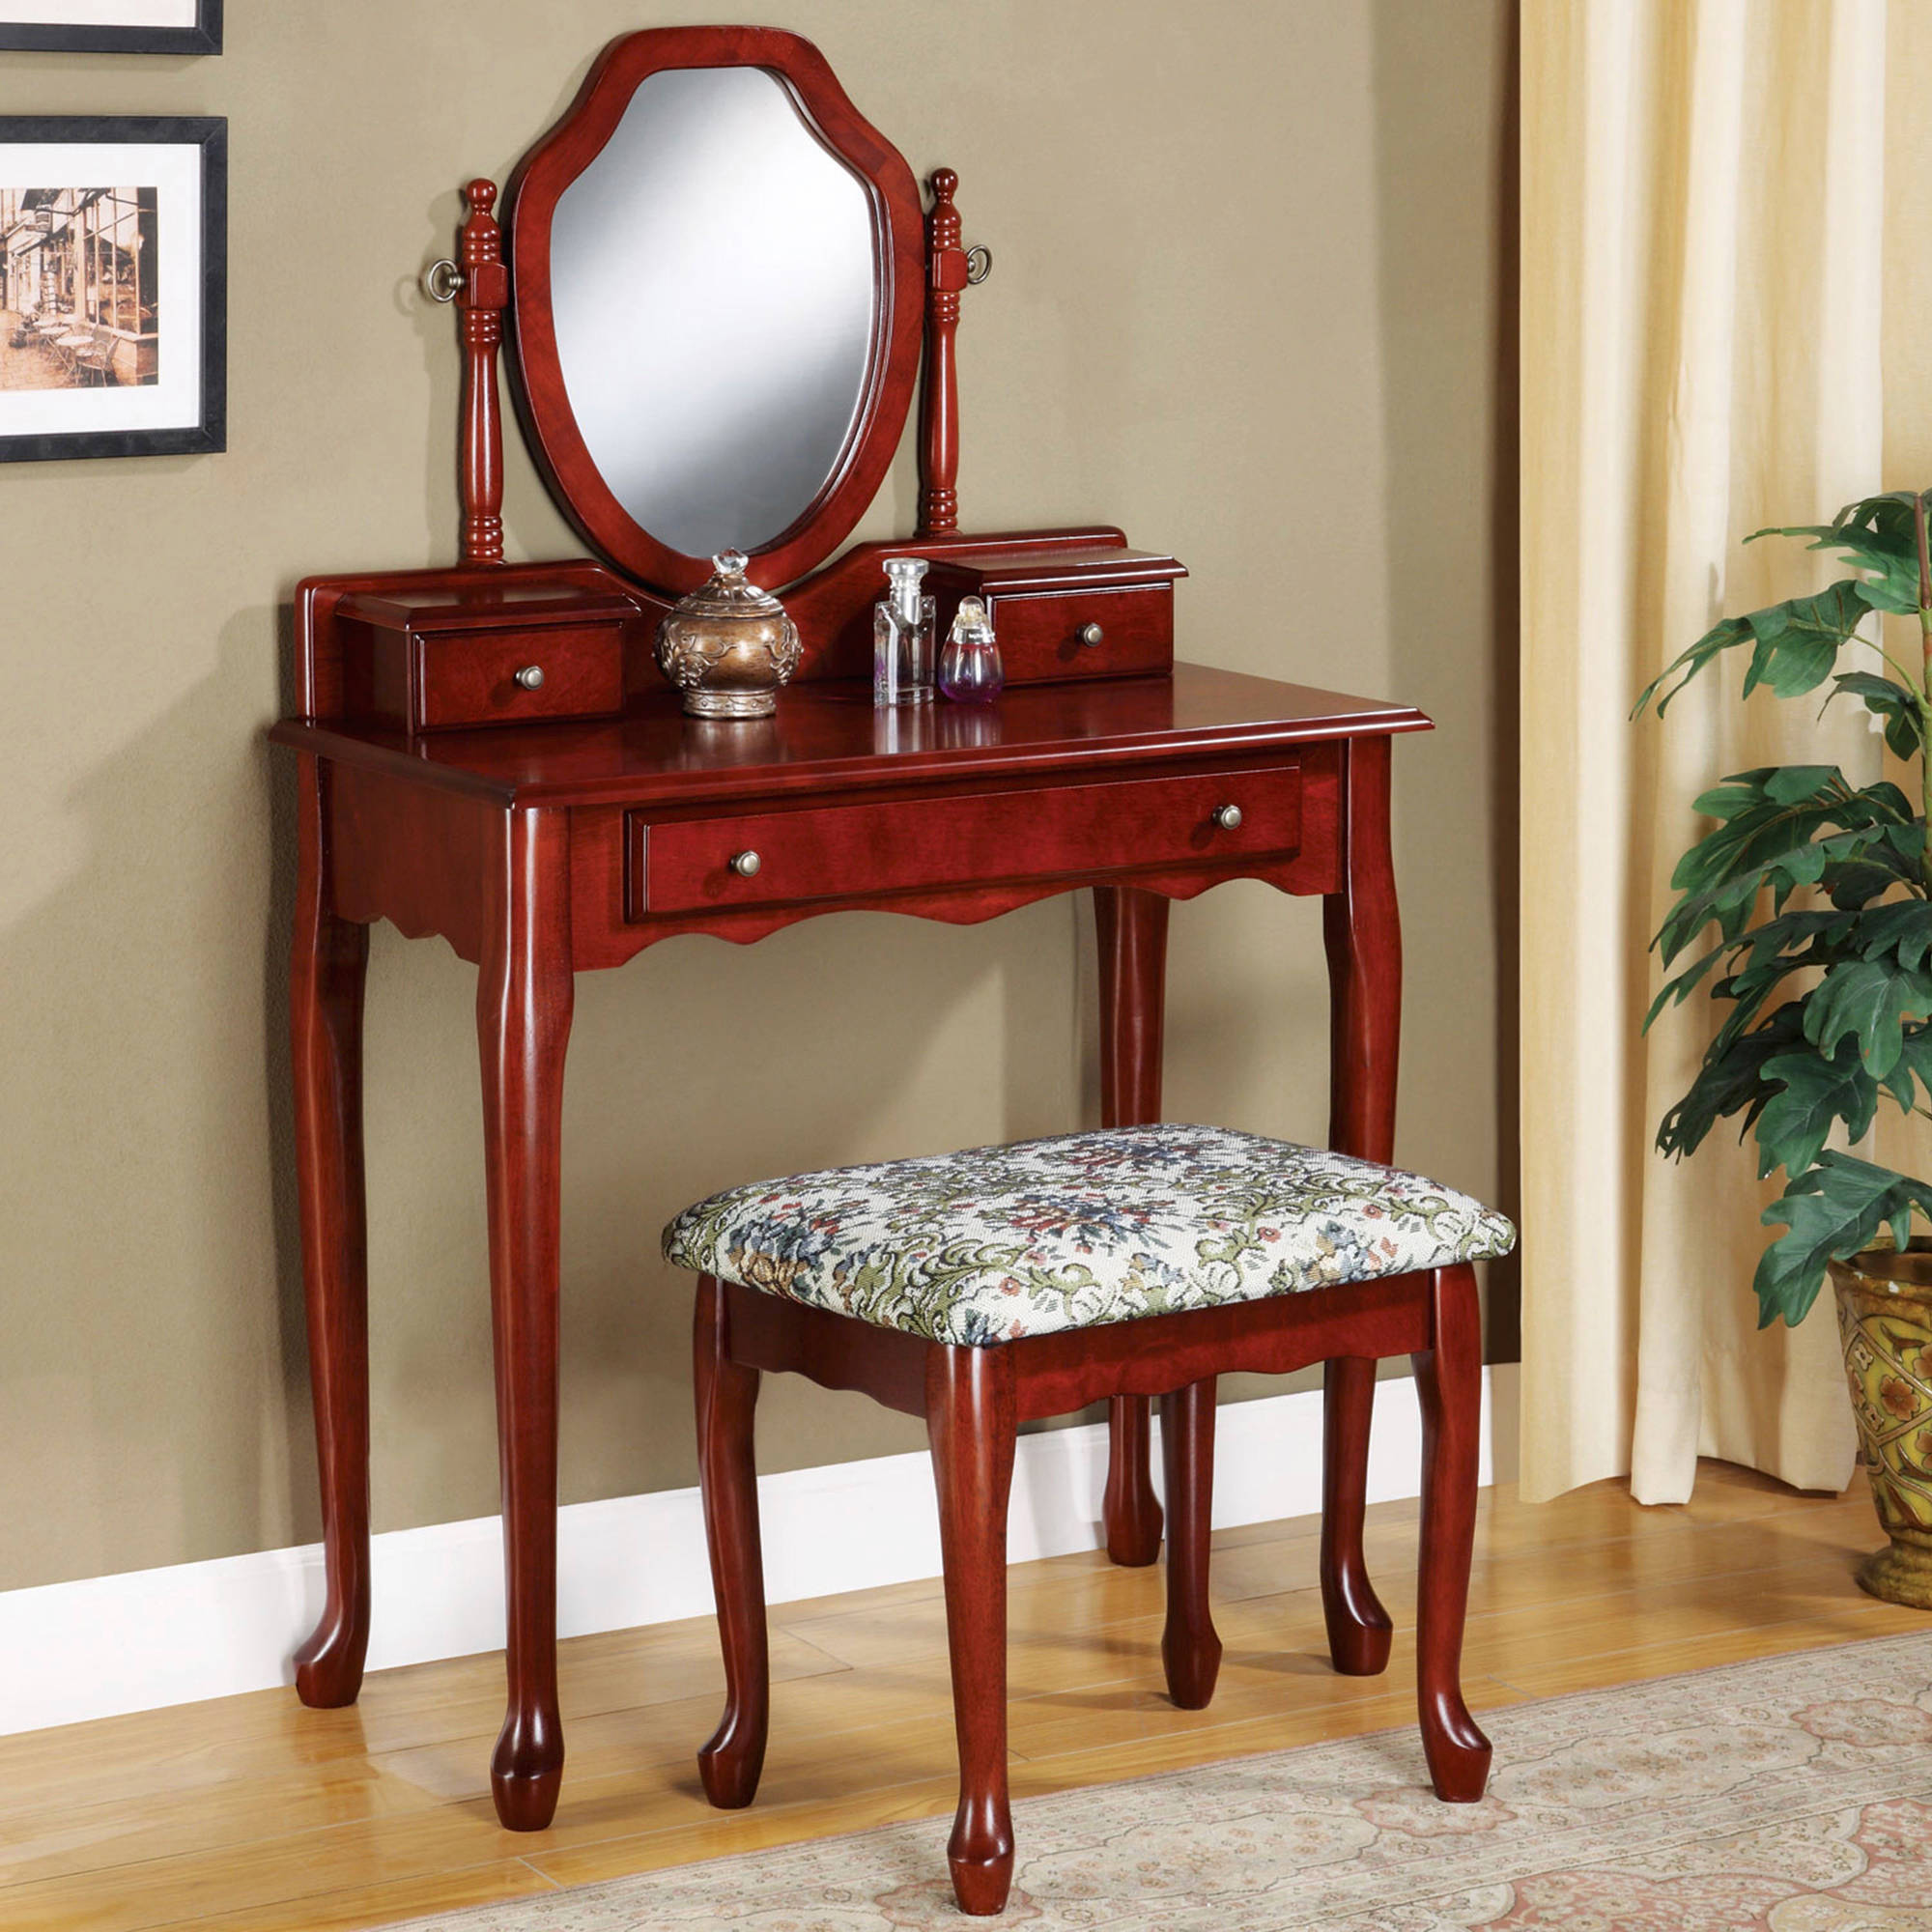 Coaster Vanity In Cherry Finish 3441 by Coaster